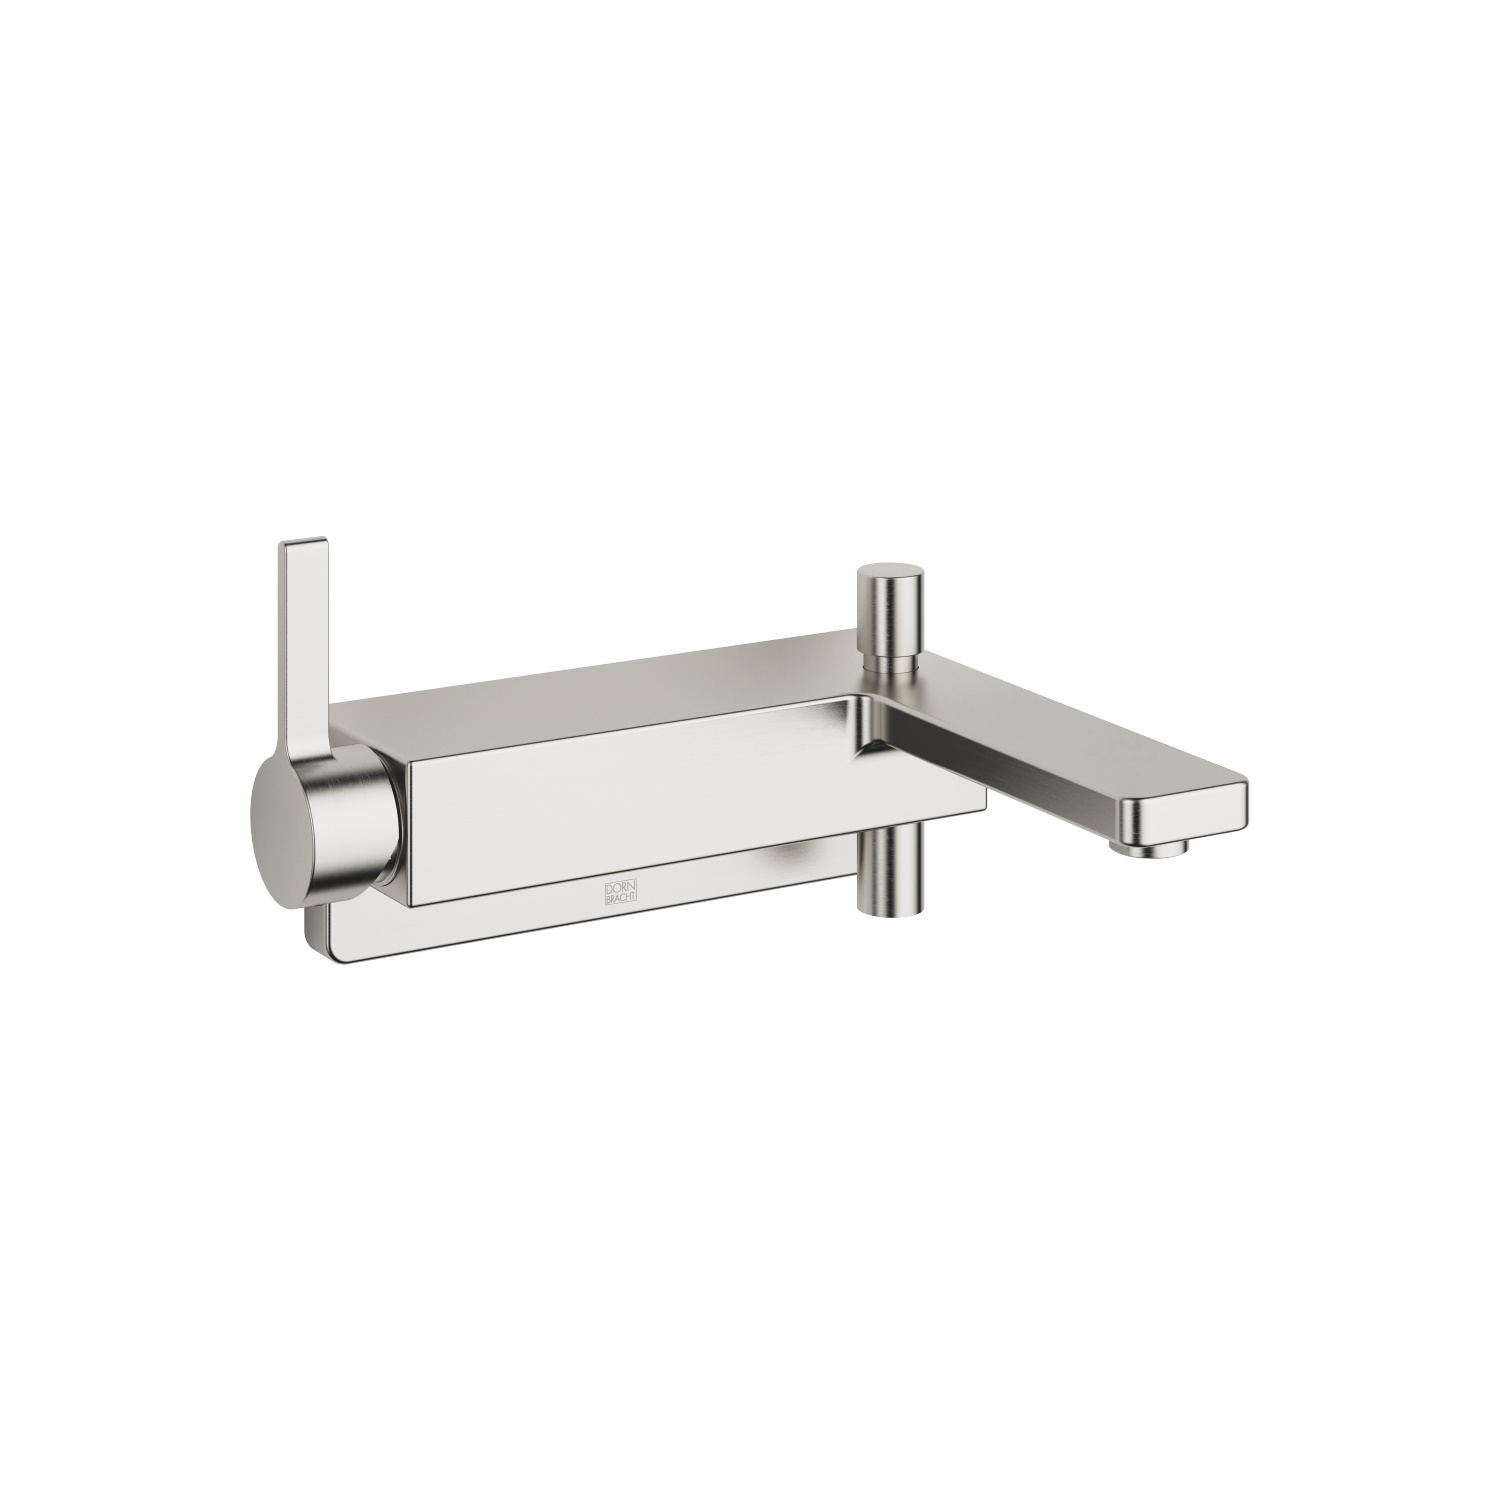 Single-lever bath mixer for wall mounting without shower set - platinum matt